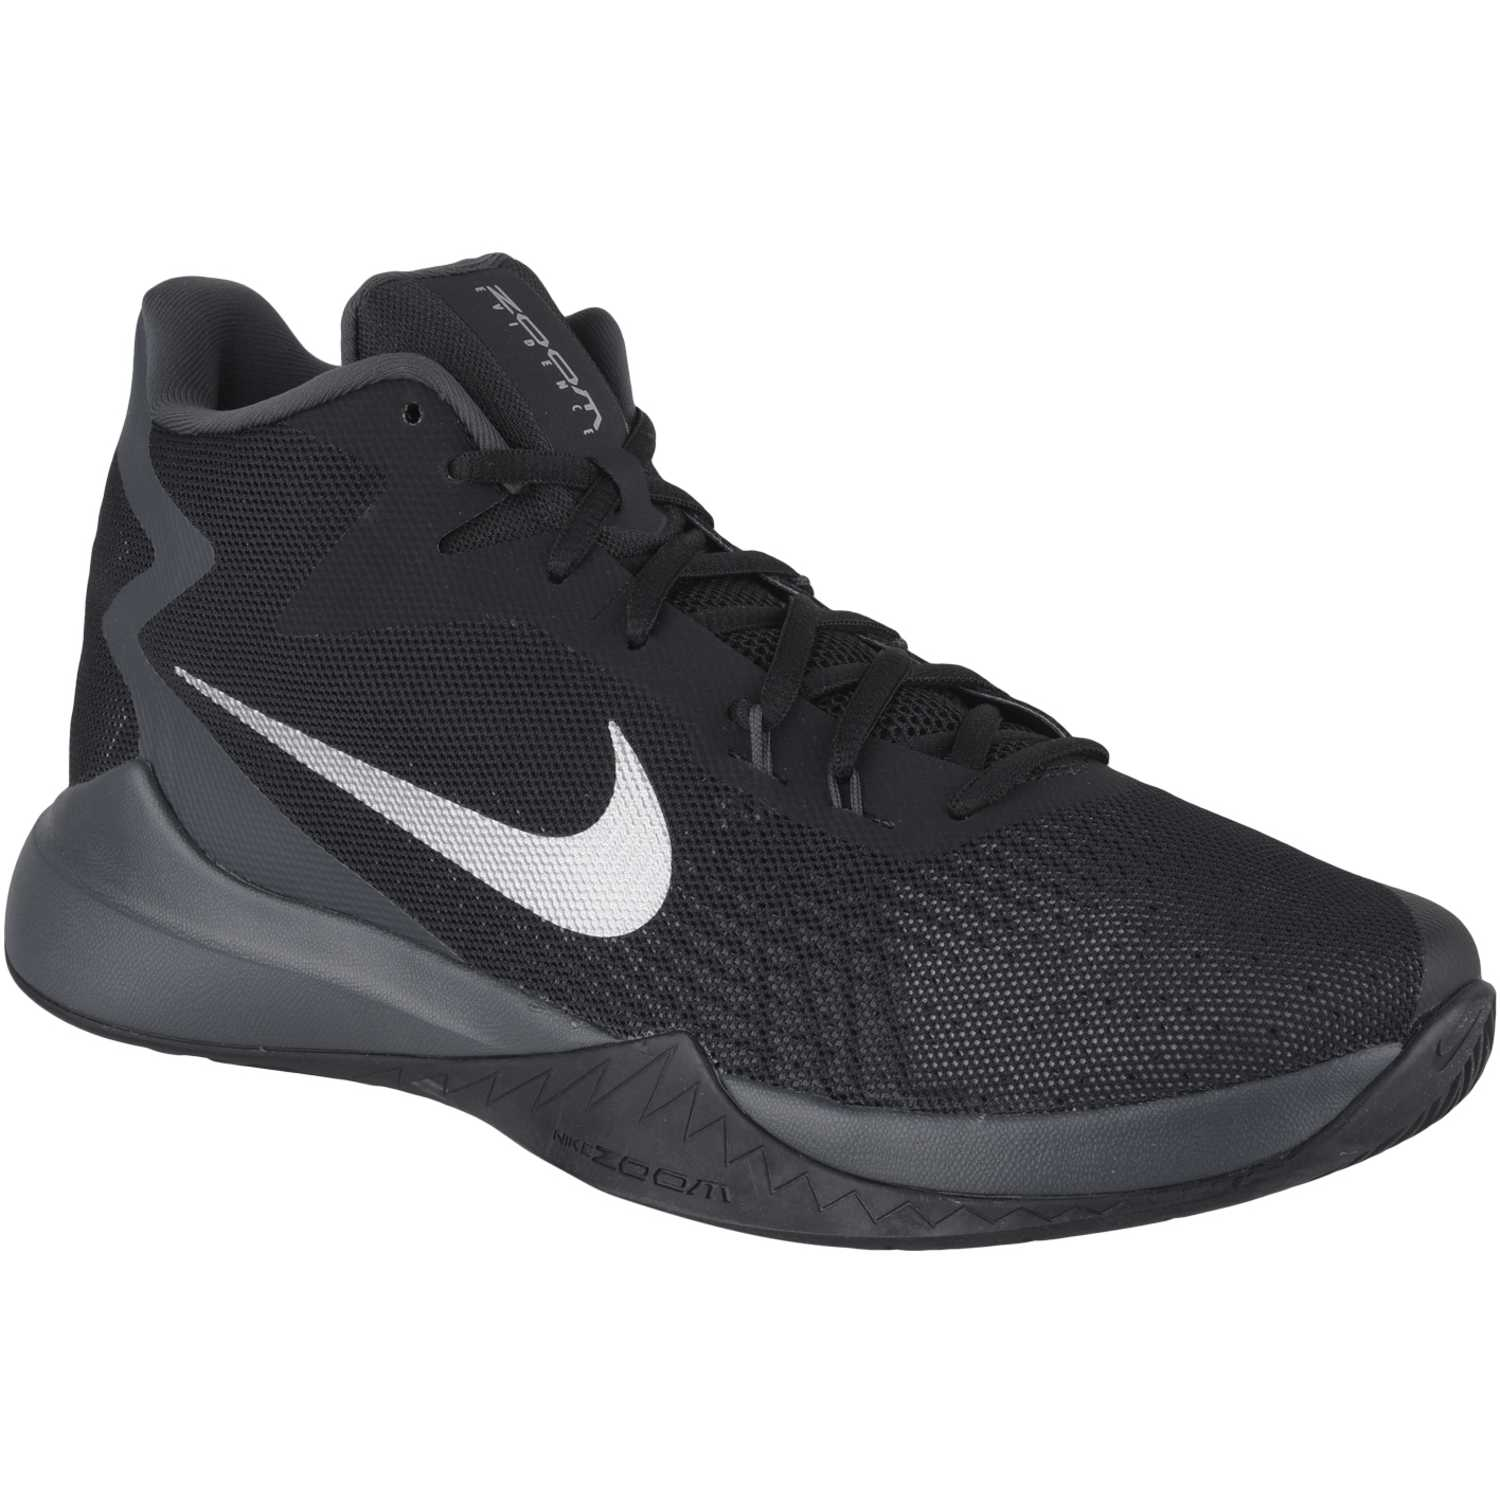 ... low price zapatilla de hombre nike negro gris zoom evidence cace8 5087b 59ca9933f56bc